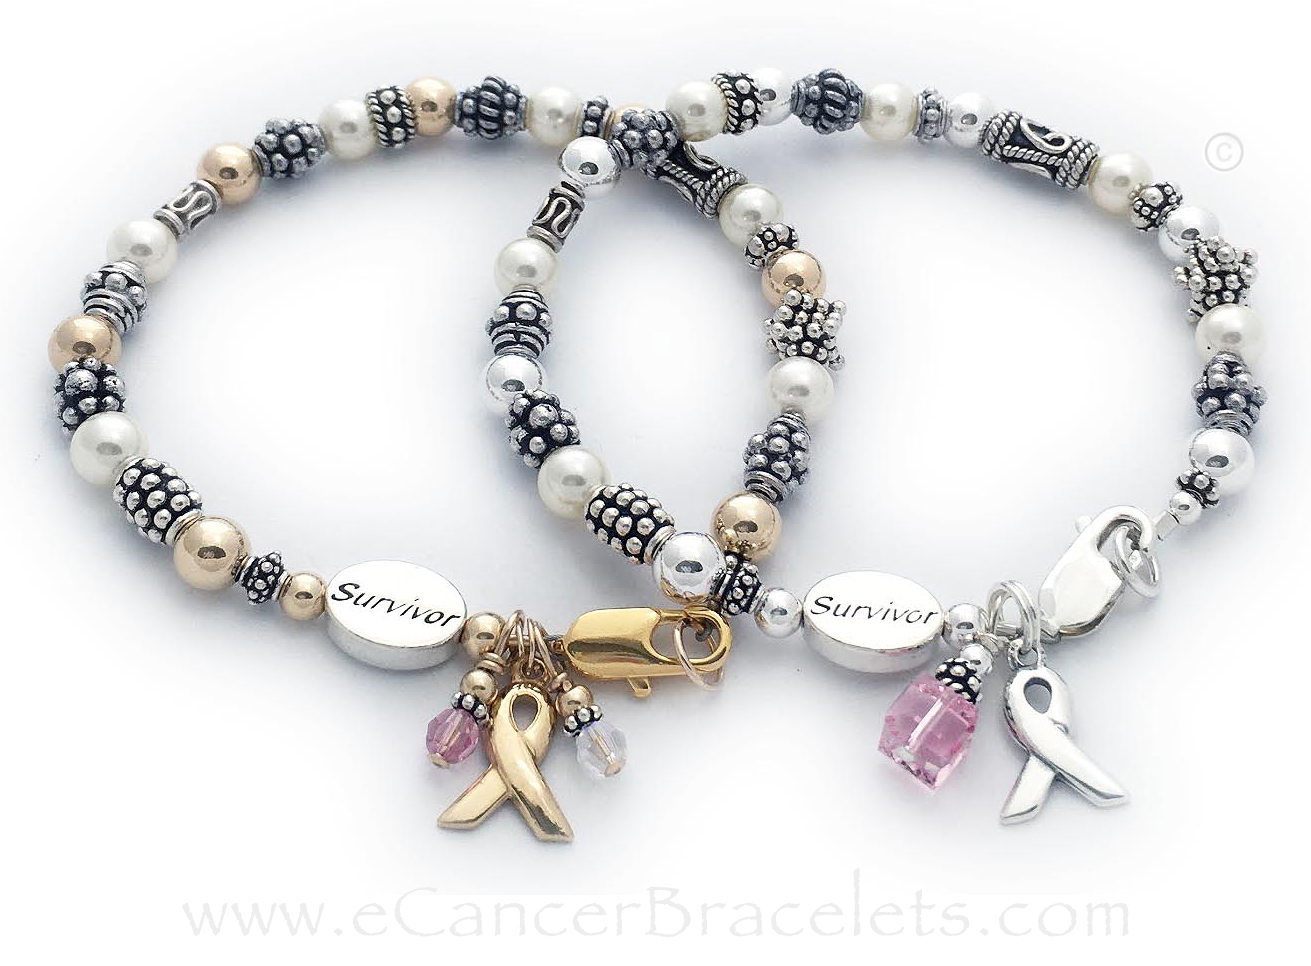 Gold Breast Cancer Survivor Bracelet and a Sterling Silver Breast Cancer Survivor Bracelet